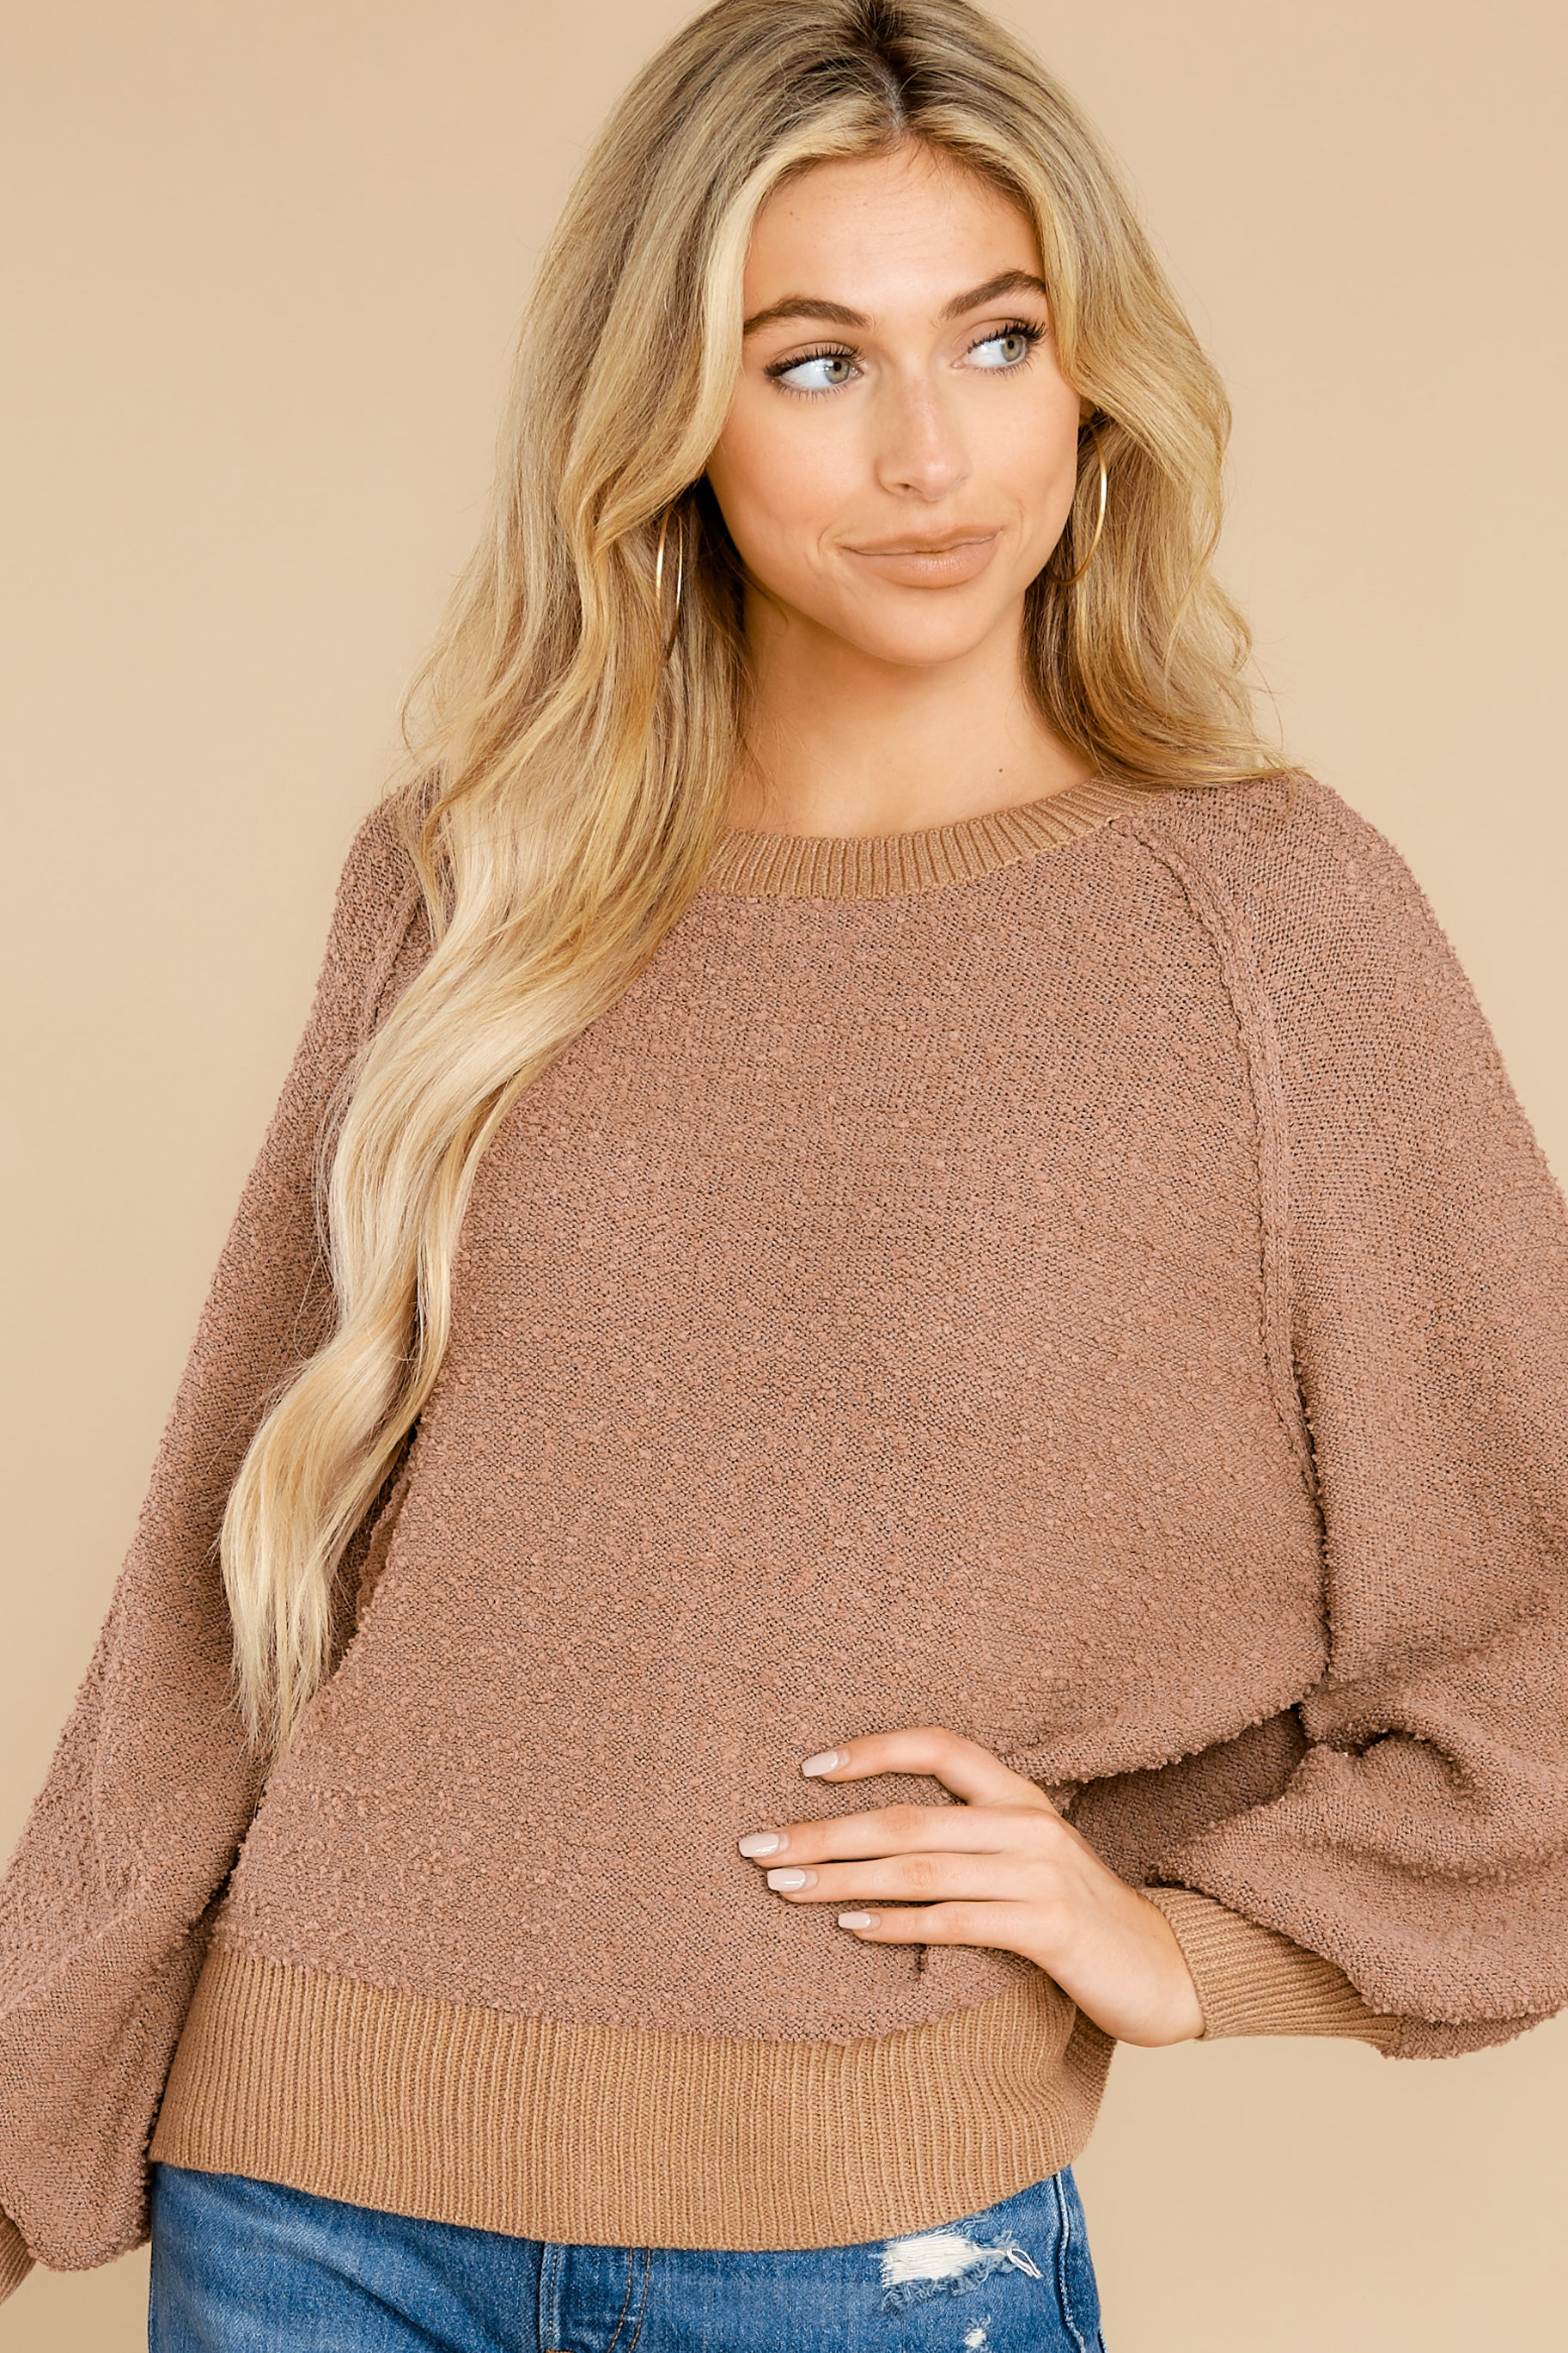 1 Feeling Carefree Mocha Sweater at reddress.com